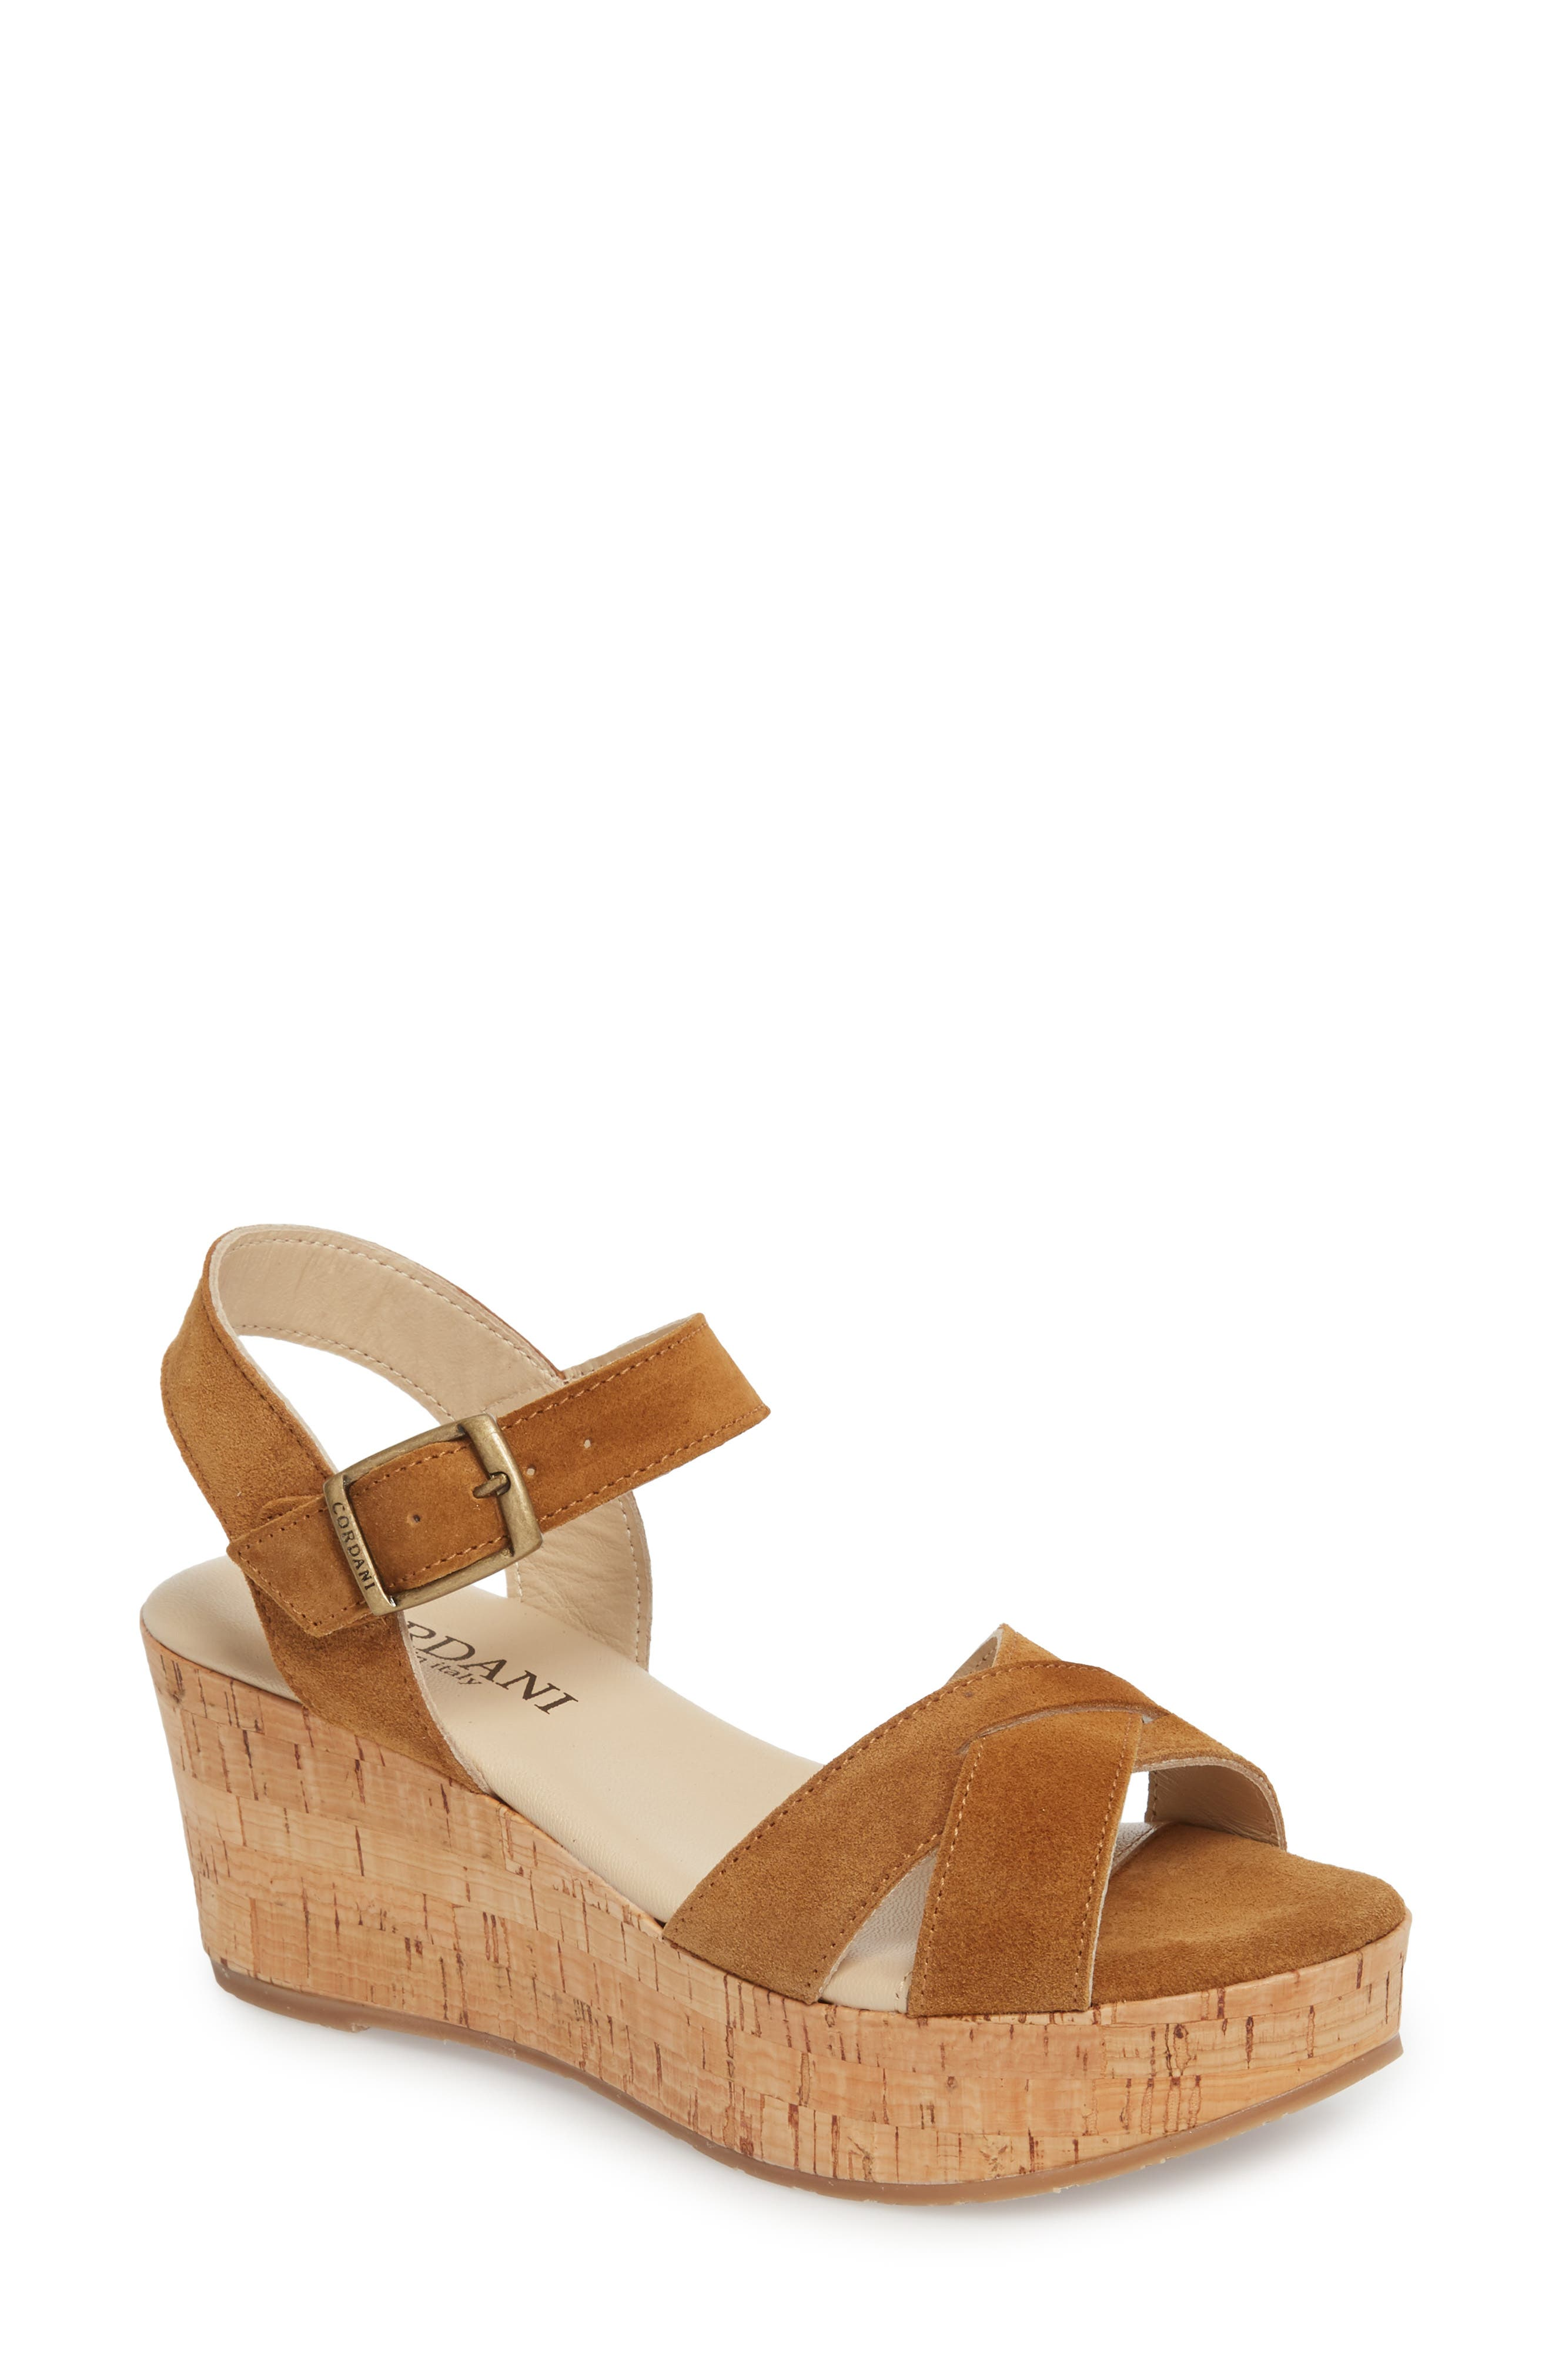 Candy Wedge Sandal,                         Main,                         color, Cola Suede